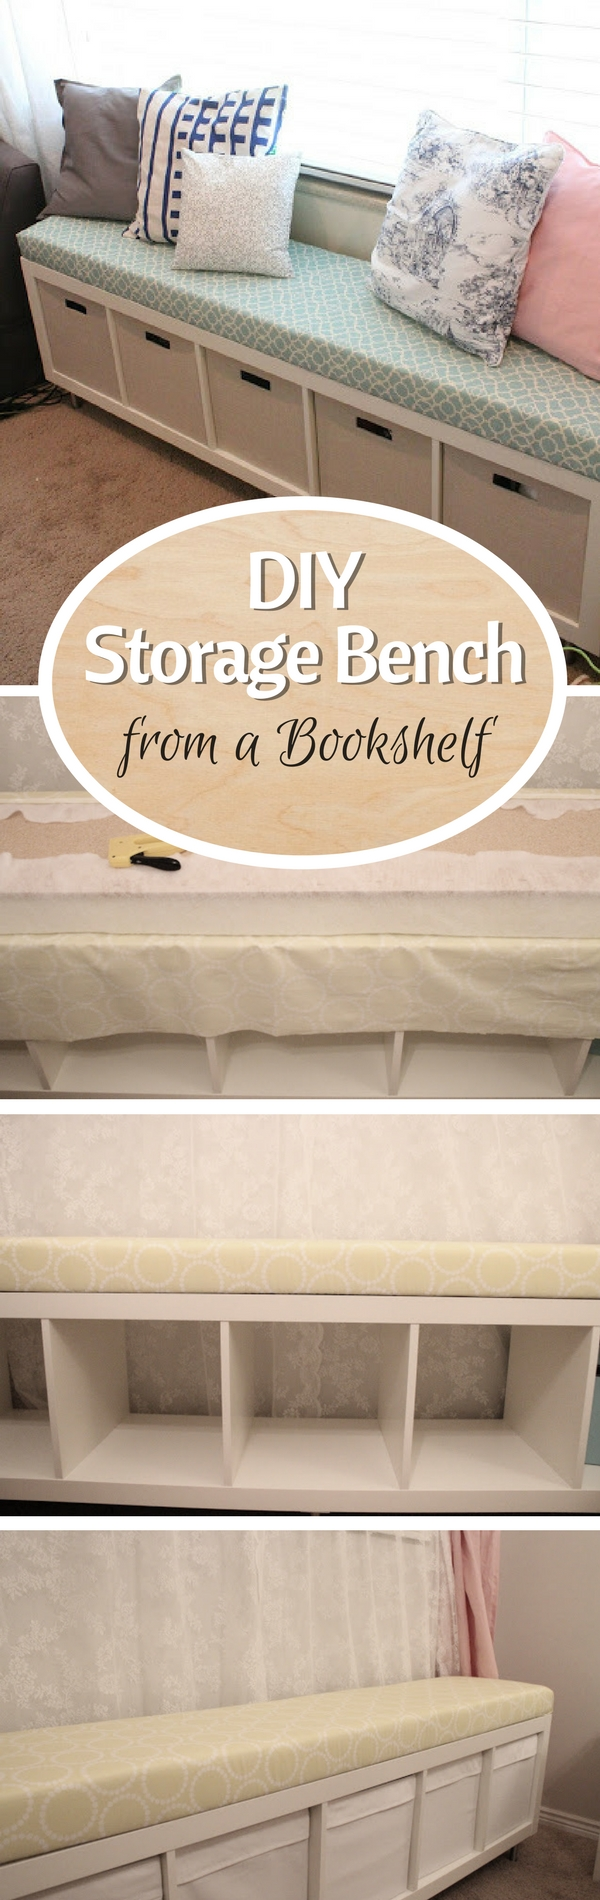 Check out how to turn a simple bookshelf into a DIY storage bench